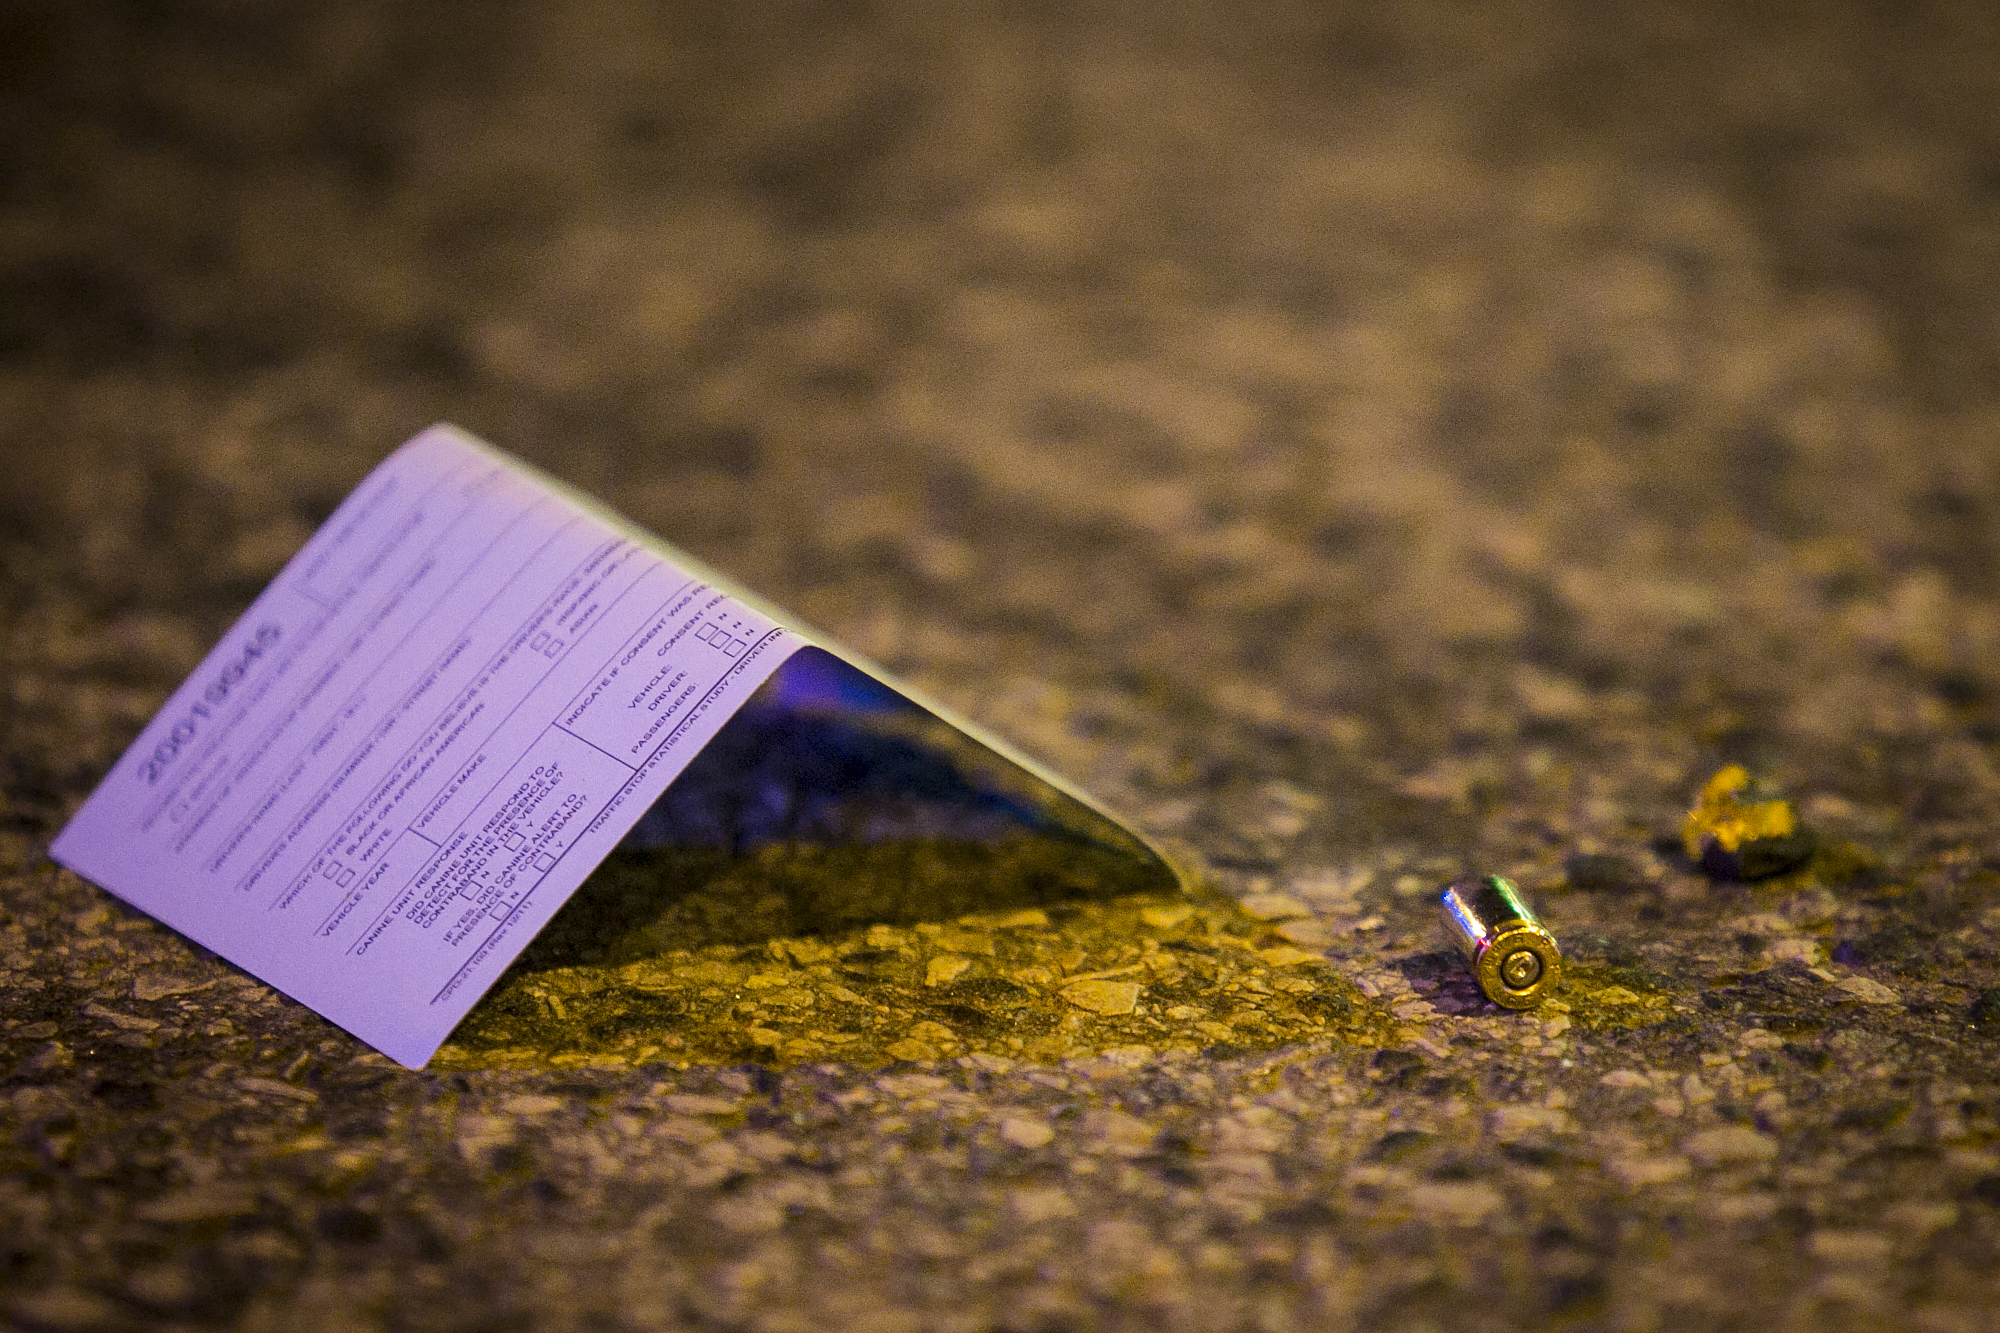 A man was fatally shot during an argument June 21, 2020, in the 5500 block of South Fairield Avenue.